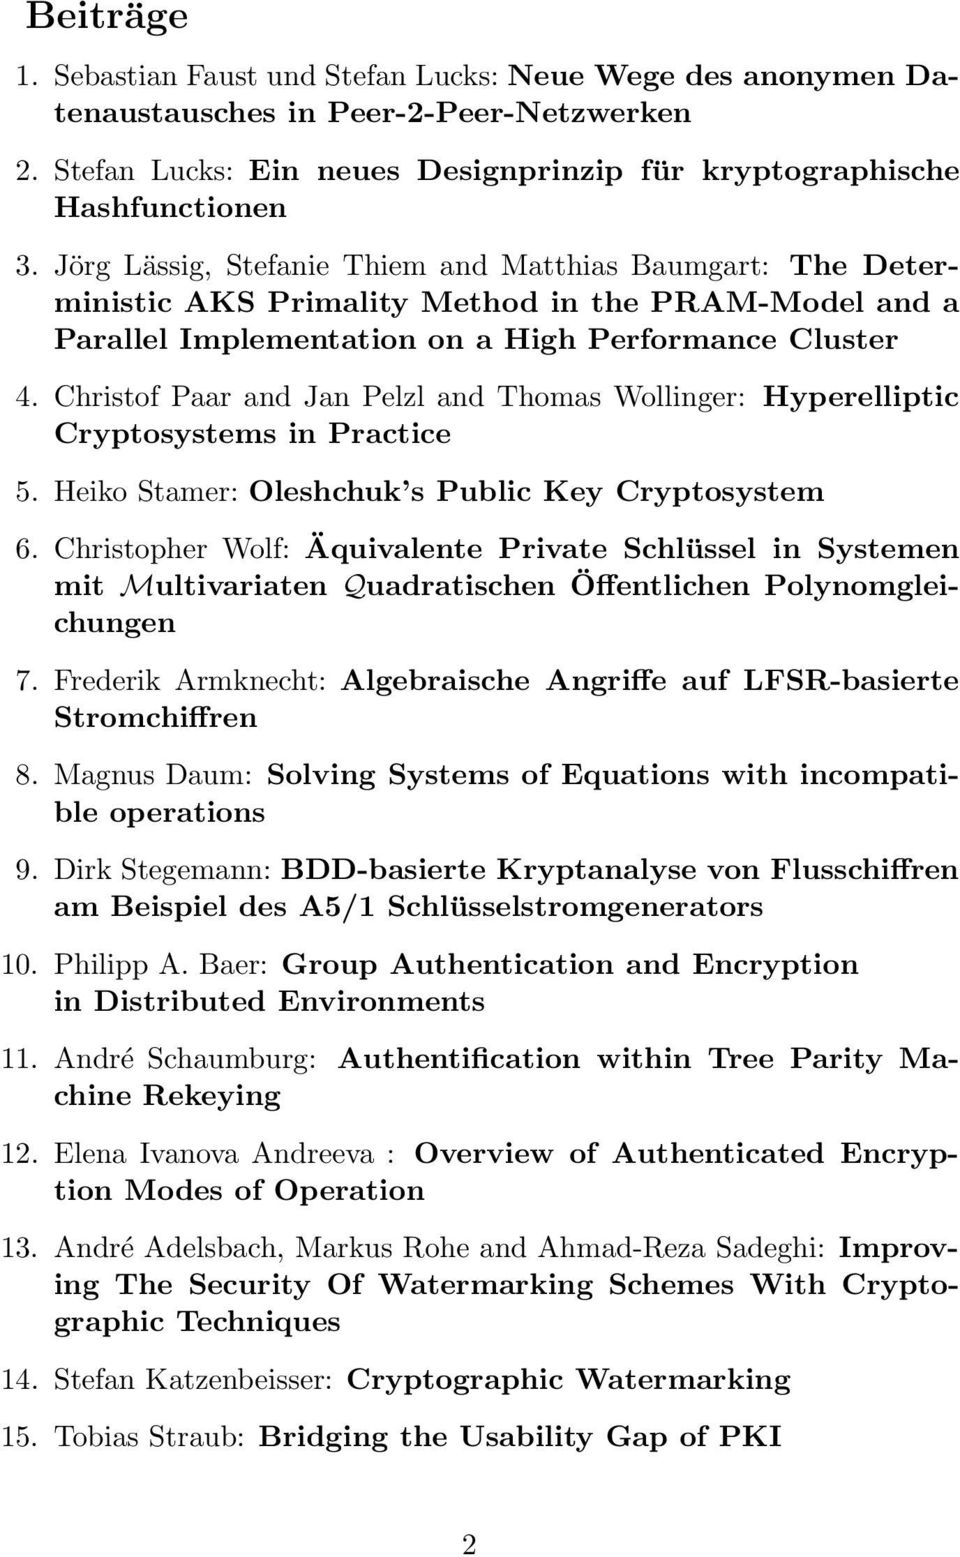 Christof Paar and Jan Pelzl and Thomas Wollinger: Hyperelliptic Cryptosystems in Practice 5. Heiko Stamer: Oleshchuk s Public Key Cryptosystem 6.